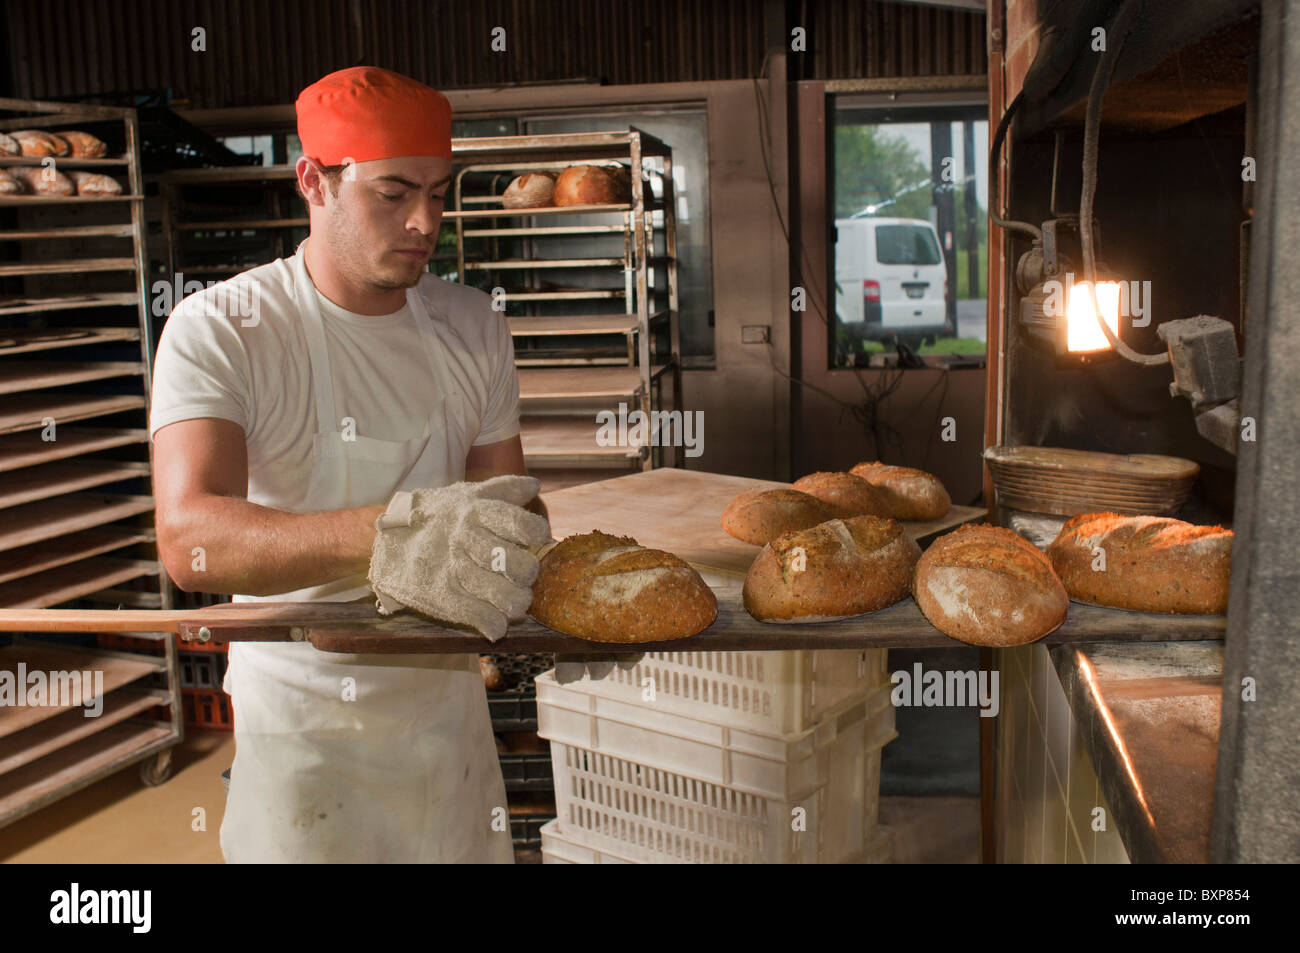 Artisan sourdough baker removing freshly baked bread from a woodfired oven Stock Photo